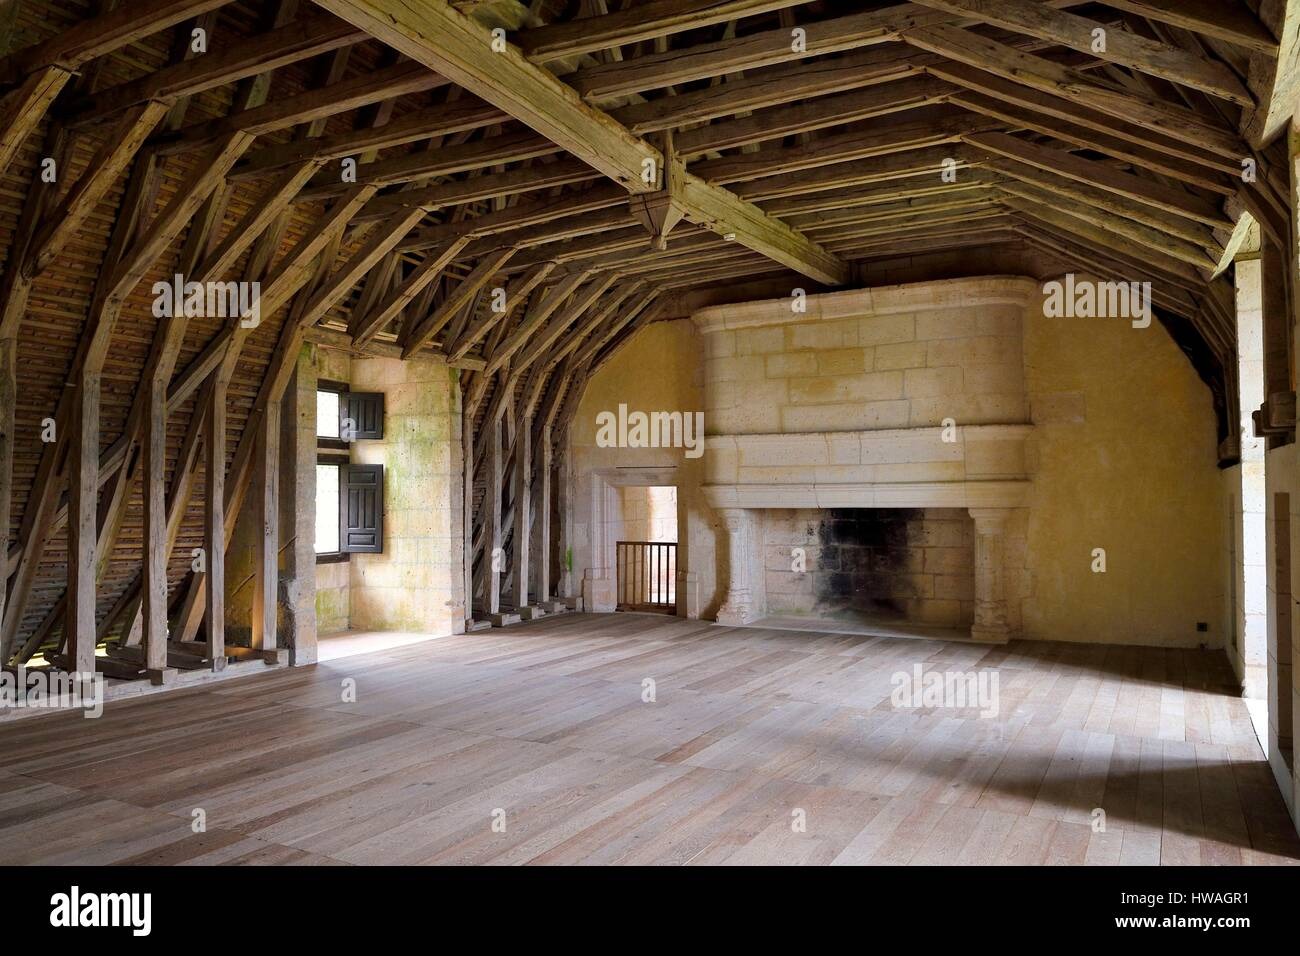 France, Dordogne, Périgord Vert, Villars, Puyguilhem castle, the oak beams in overturned hull boat shaped Stock Photo